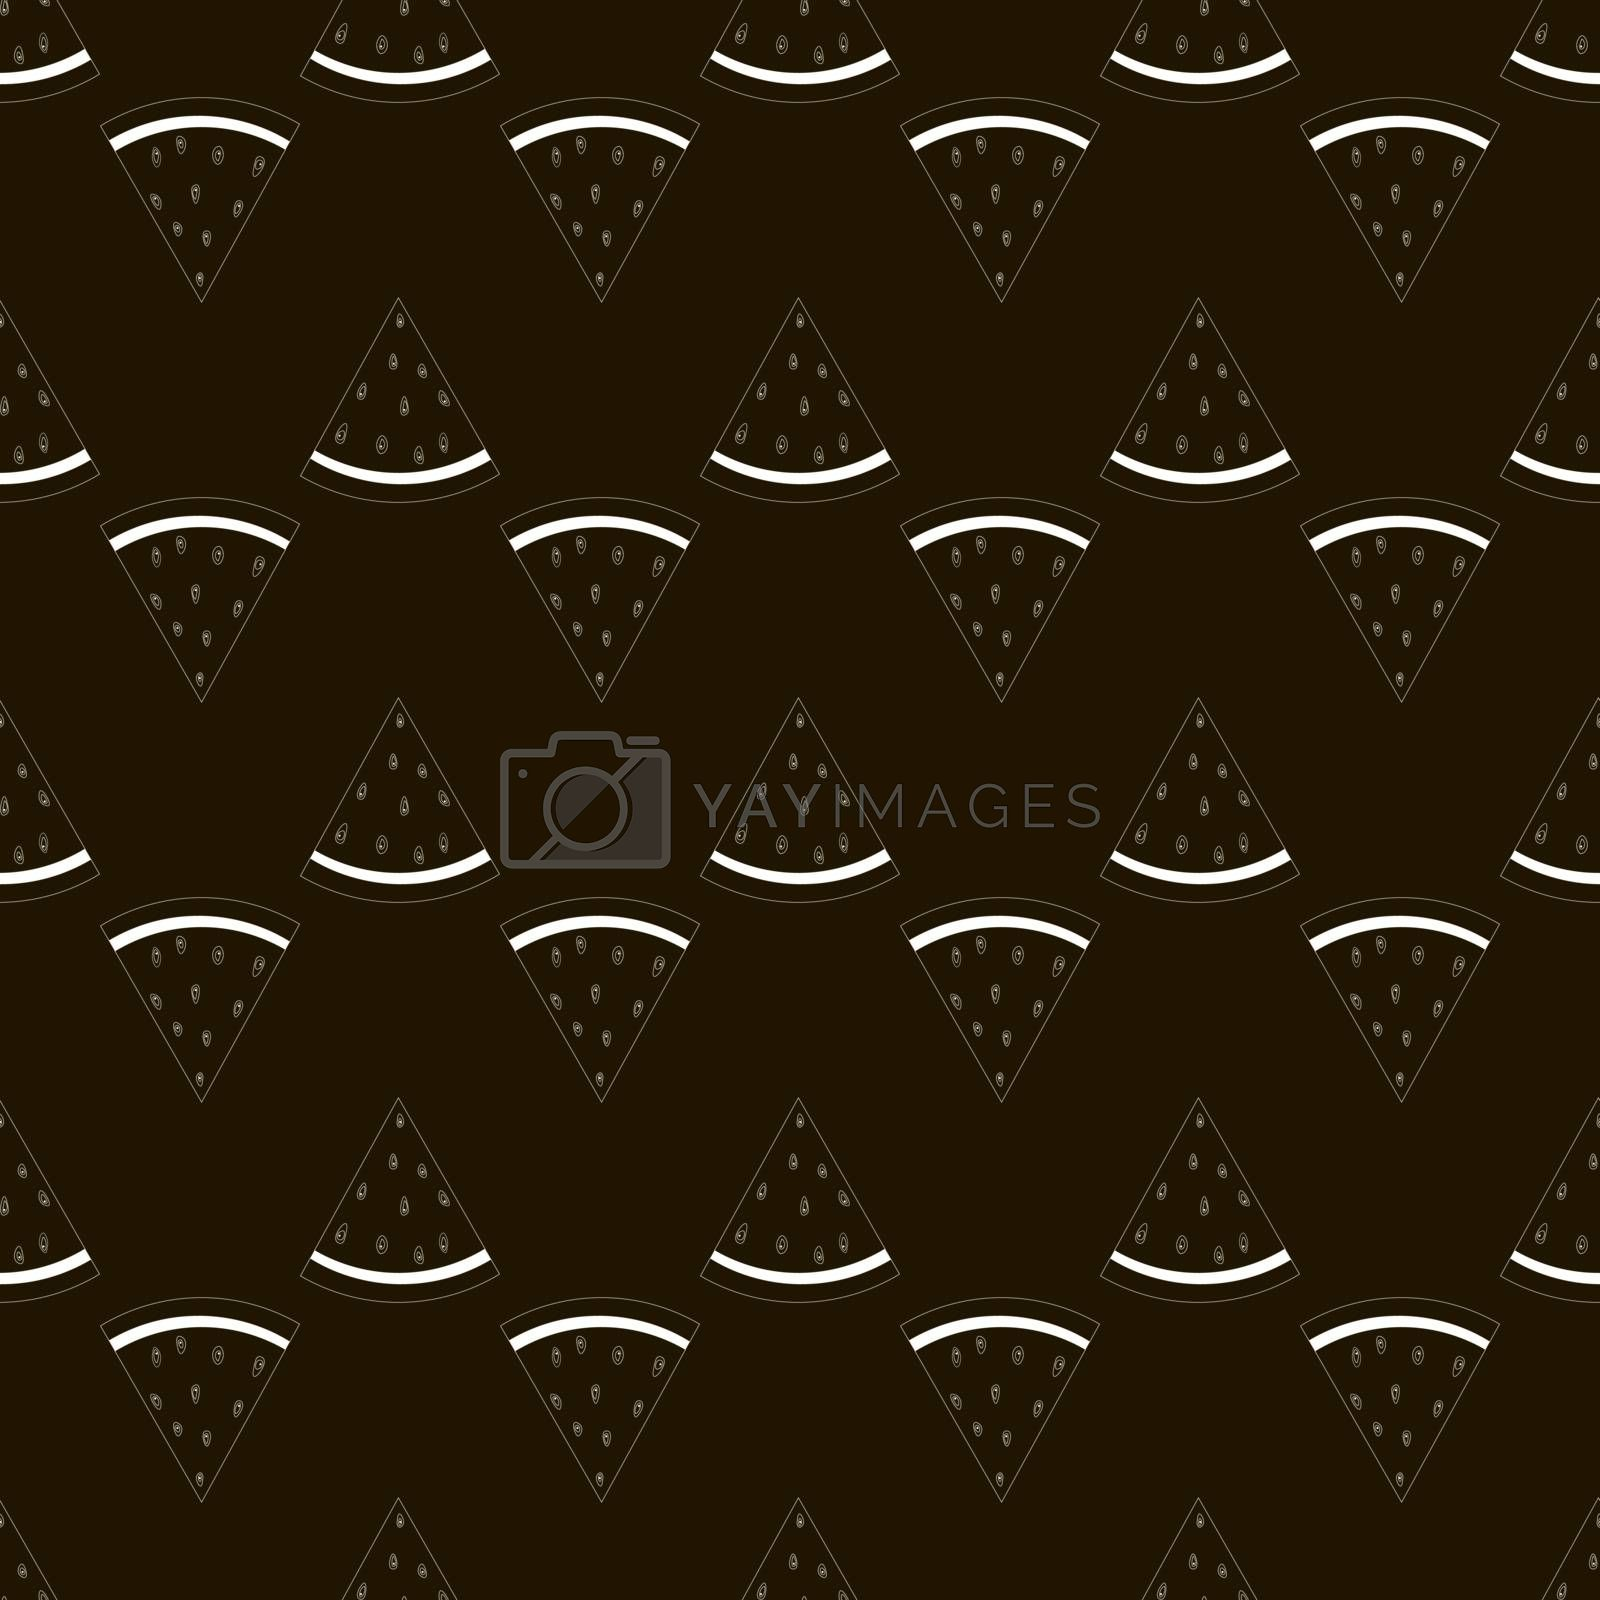 Outline Seamless background with watermelon slices. Vector illustration. by Musjaka0